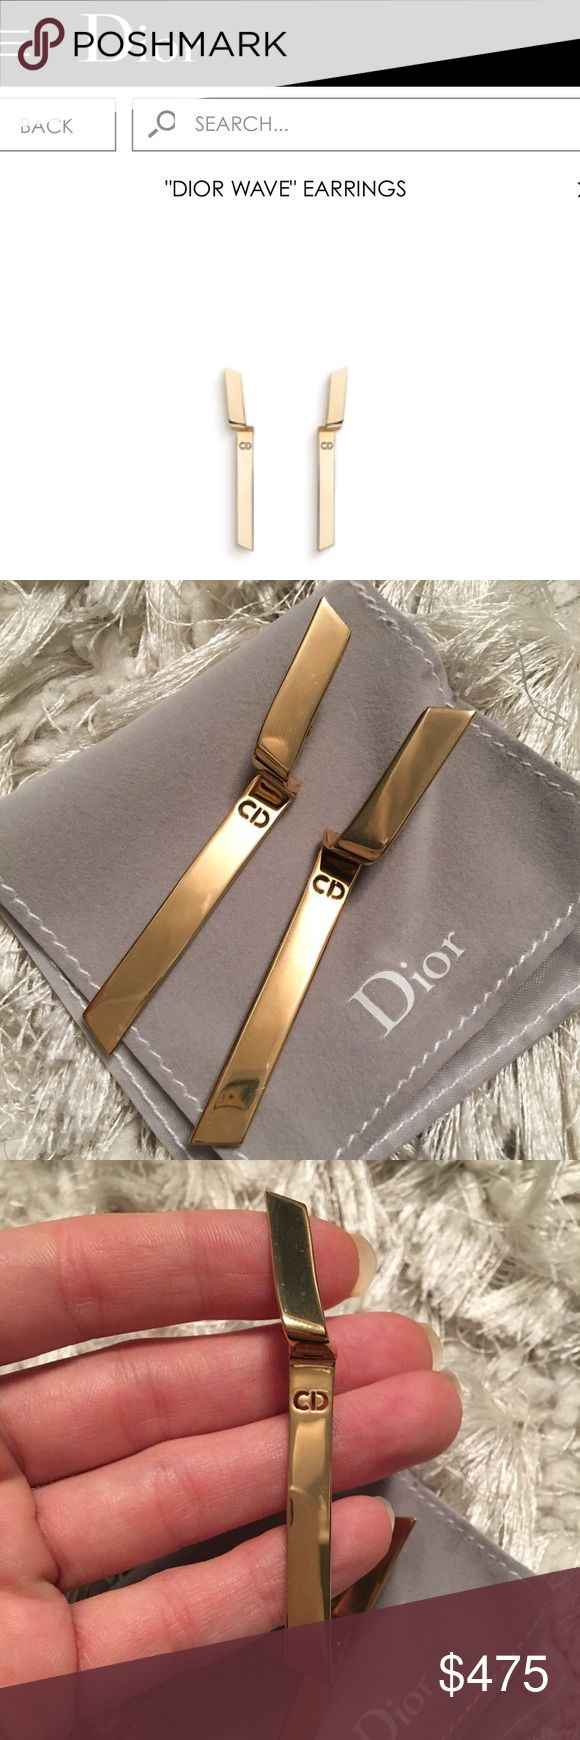 """In Stores DIOR """"Wave"""" Gold Drop Logo Earrings In Stores Now! Authentic DIOR """"Wave"""" Earrings. These are only avail in boutiques. Gorgeous sleek drop flexible design. The post sits down so it allows it to crawl up the ear.  These are very good condition. Minimal signs of use. Comes with box and dust bag. Drop is about 2.4"""" Dior Jewelry Earrings"""